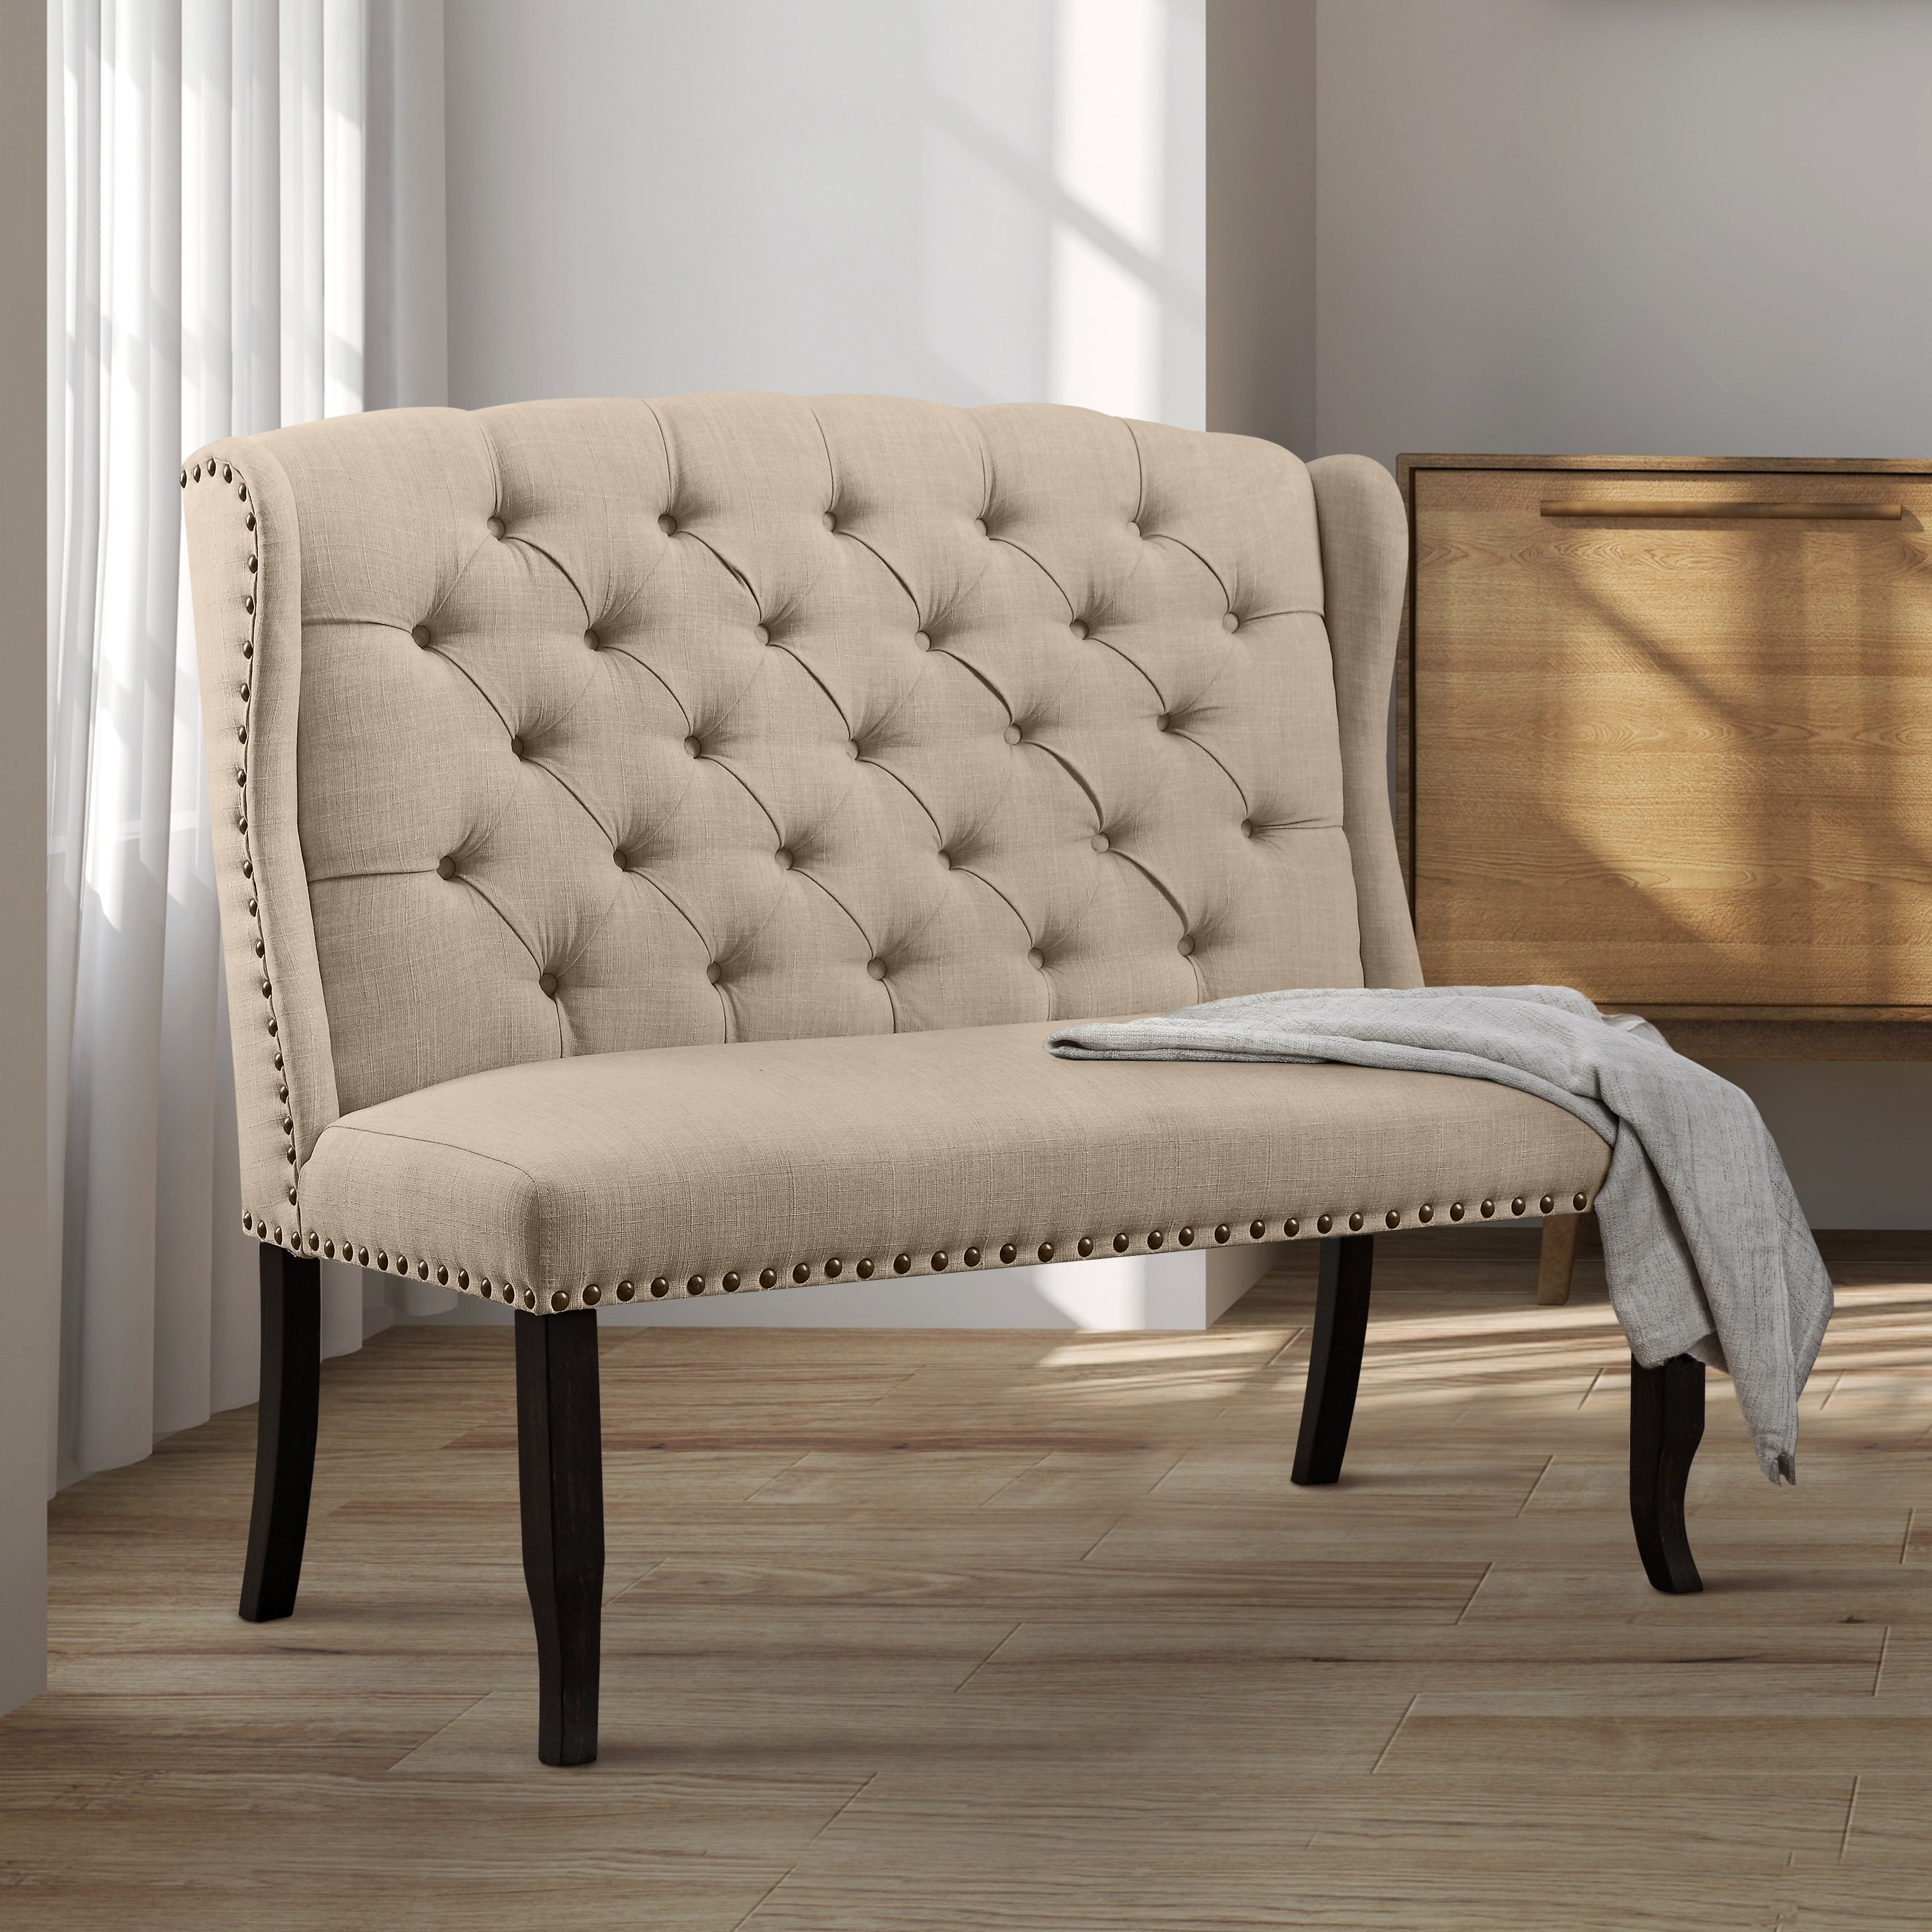 Buy Furniture of America Sofas & Couches Online at Overstock